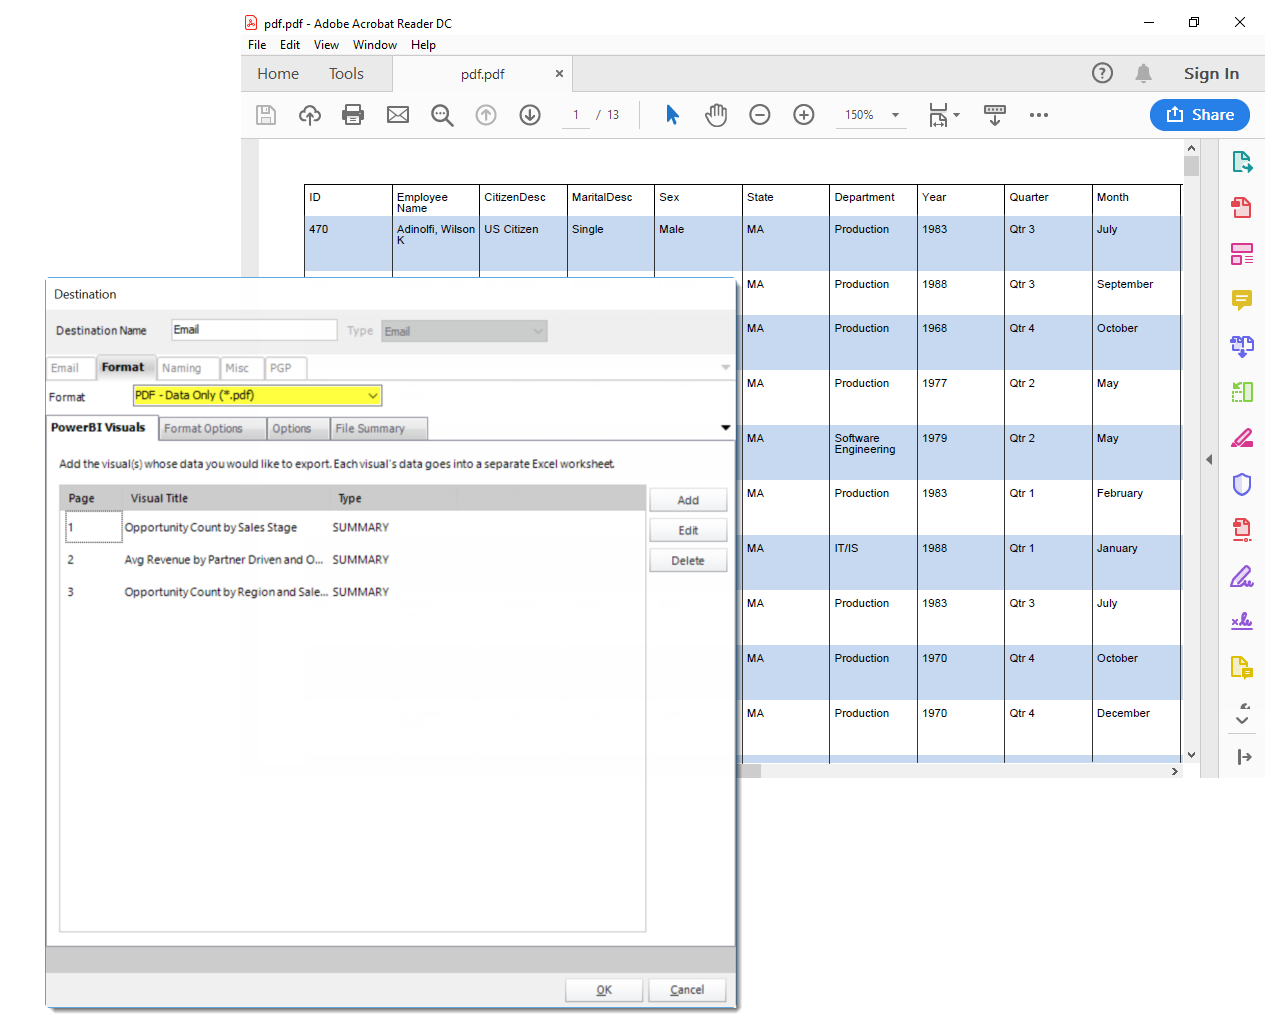 How To Export A Power BI Report To PDF With All Data